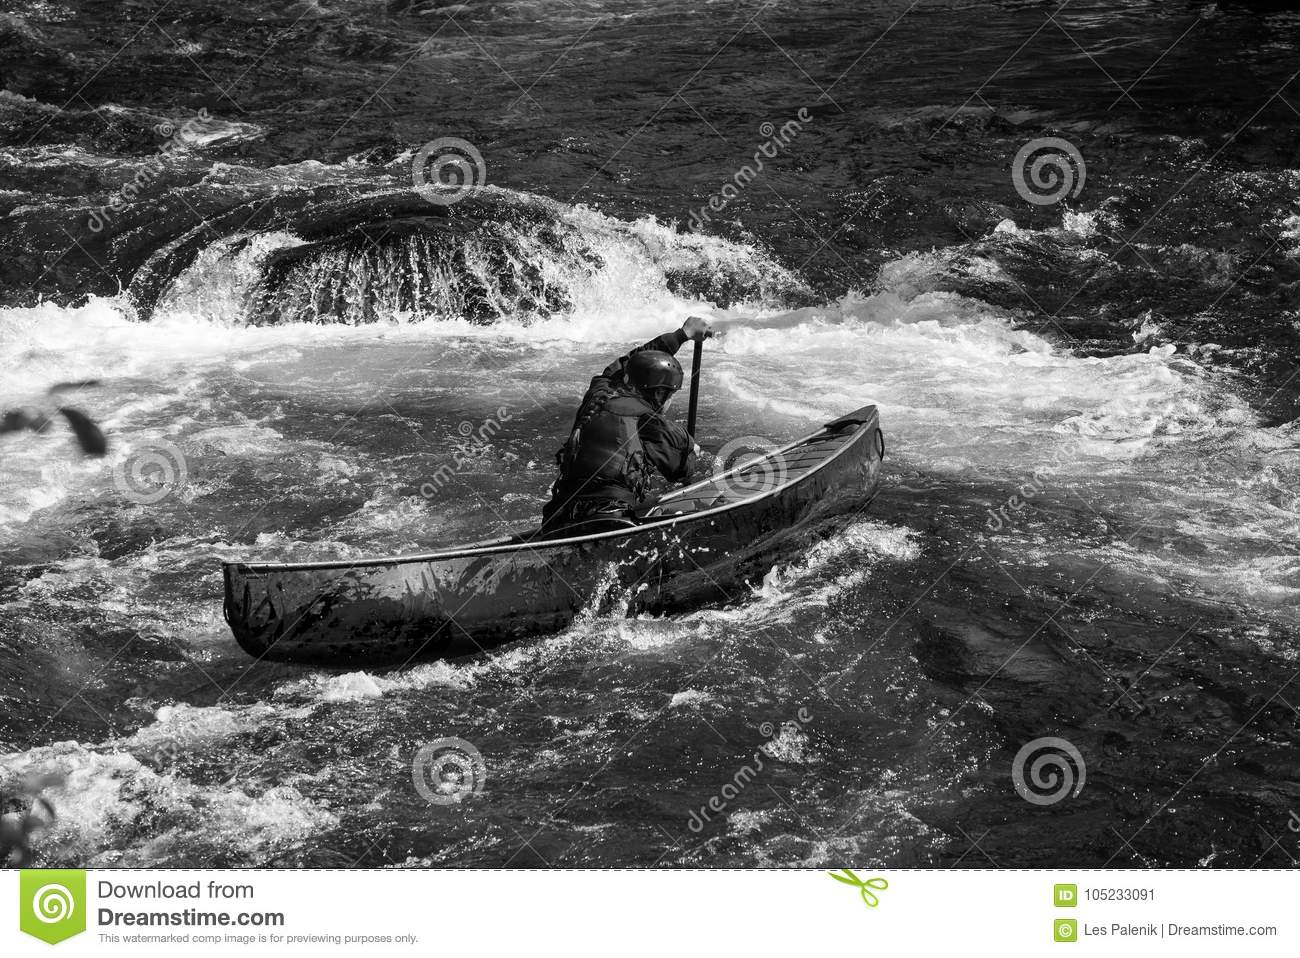 Female Paddler In A Whitewater Canoe Stock Image - Image of